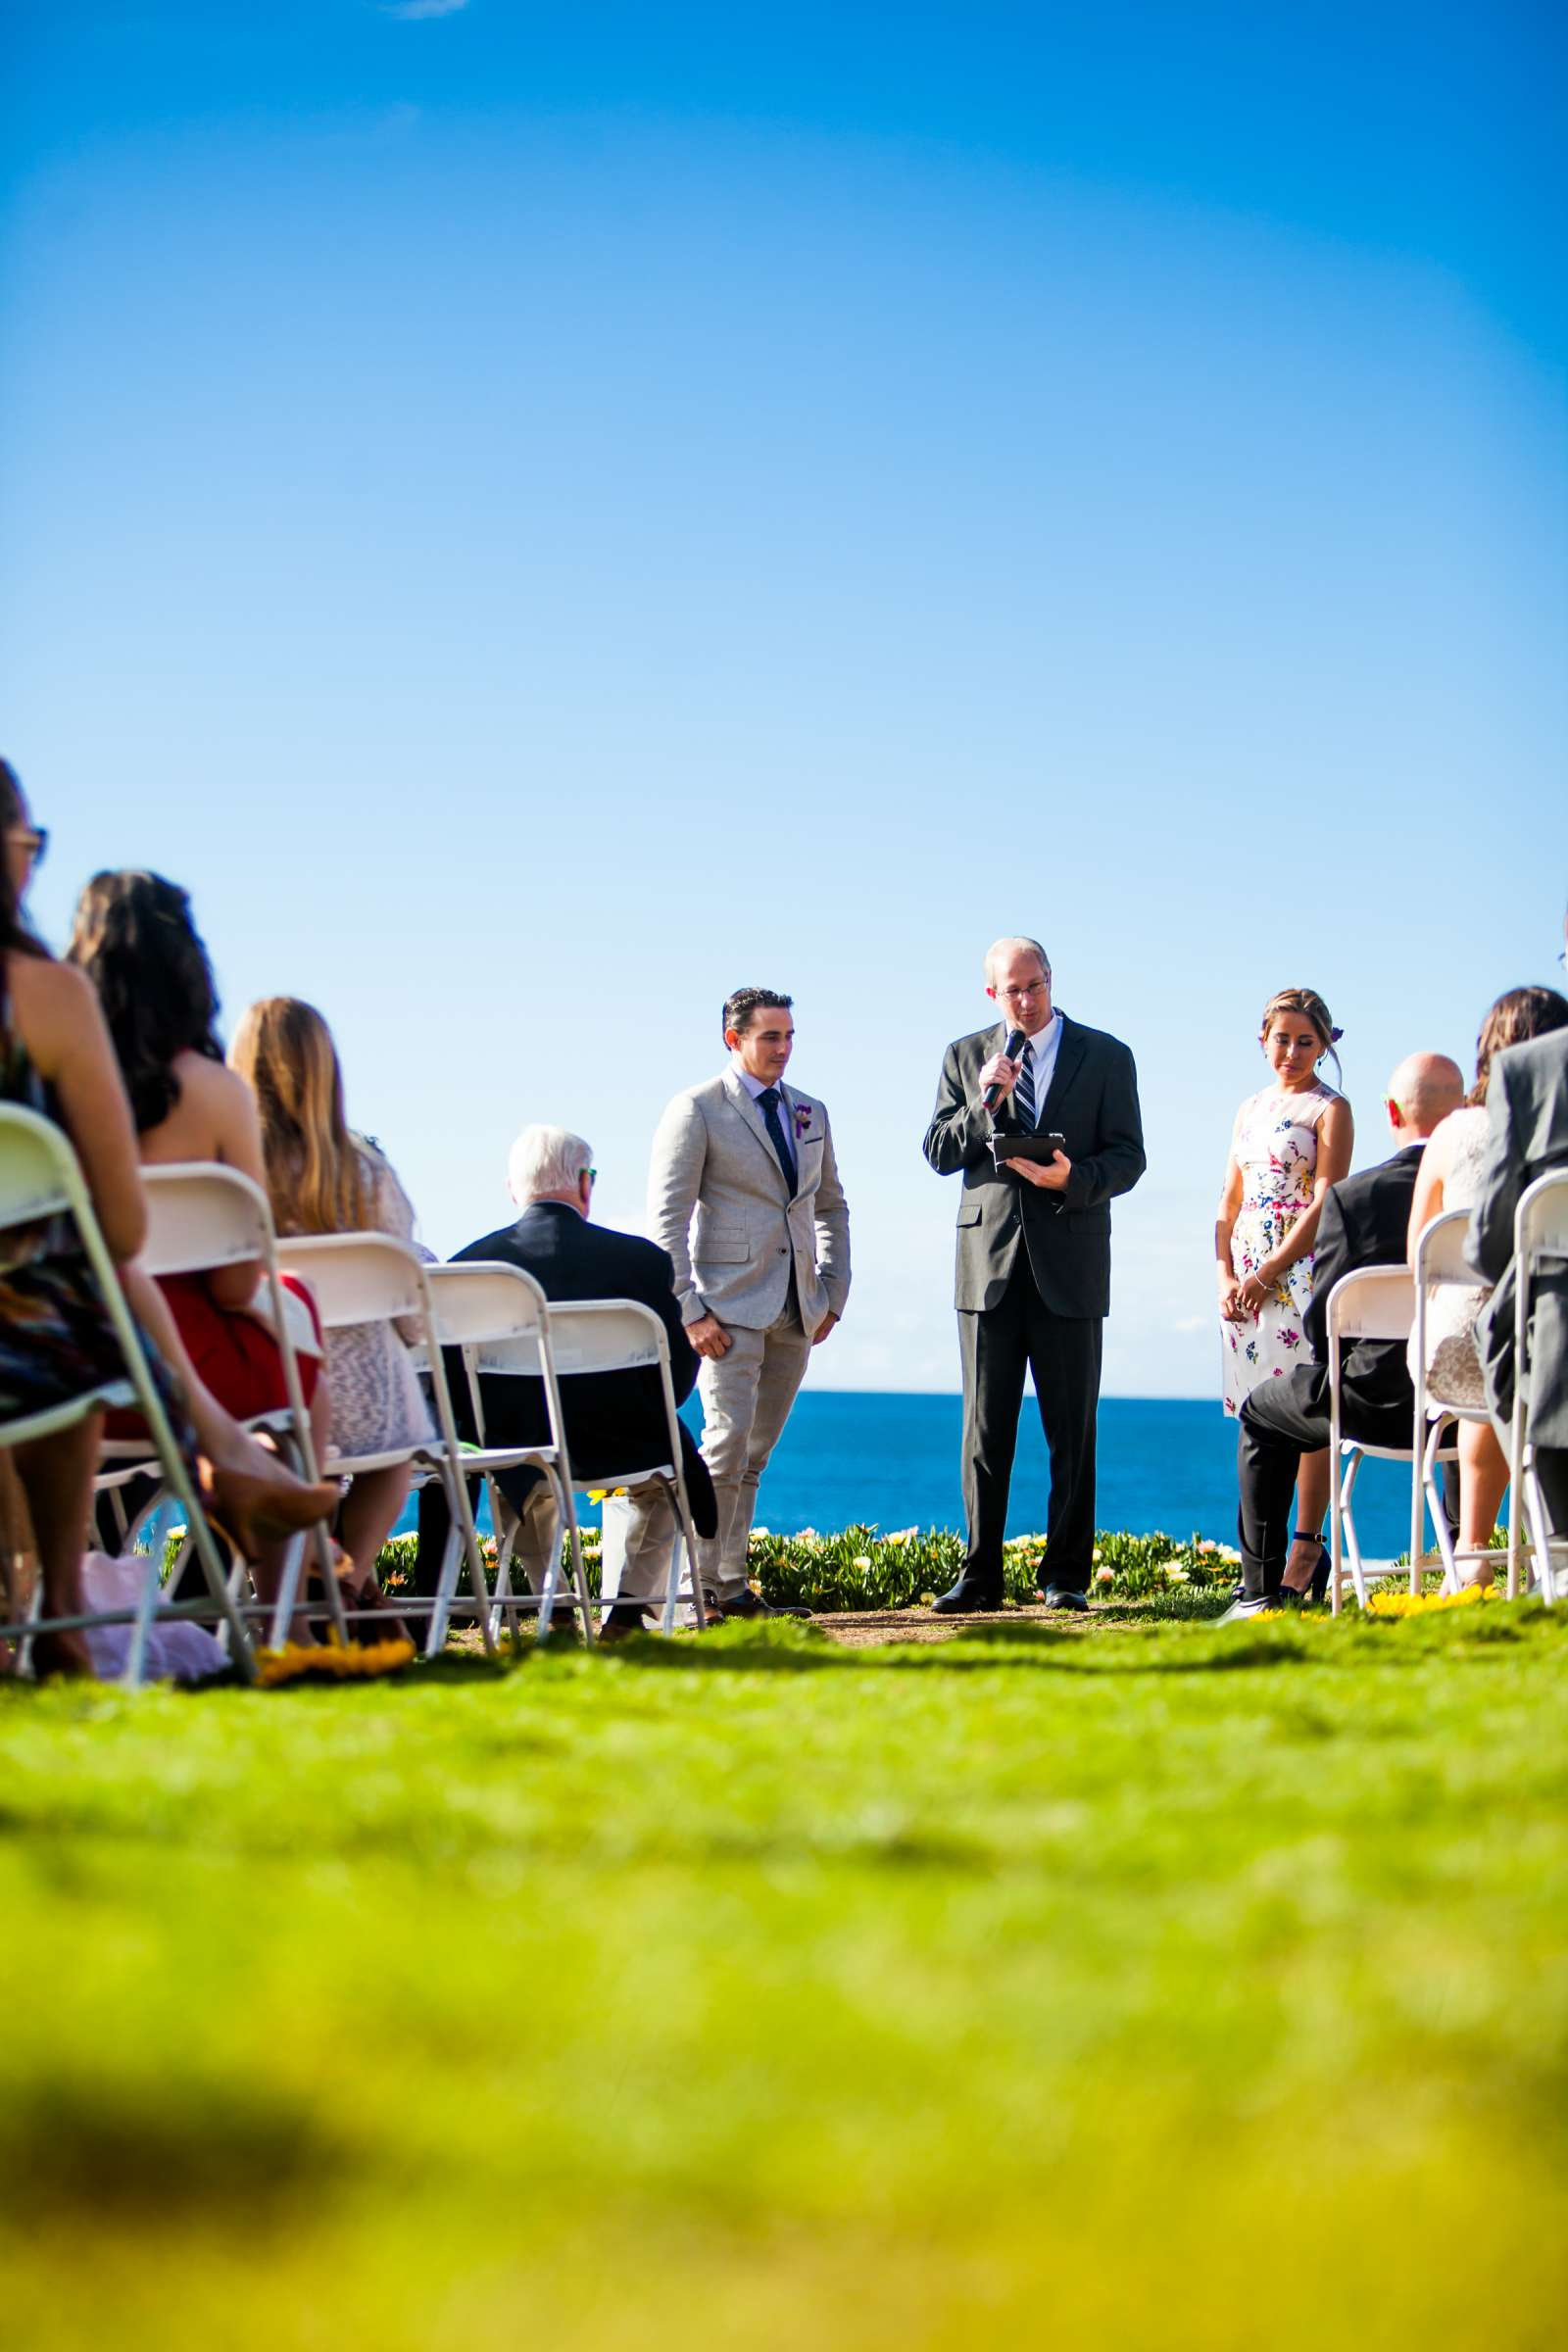 George's at the Cove Wedding, Olivia and Sean Wedding Photo #214672 by True Photography